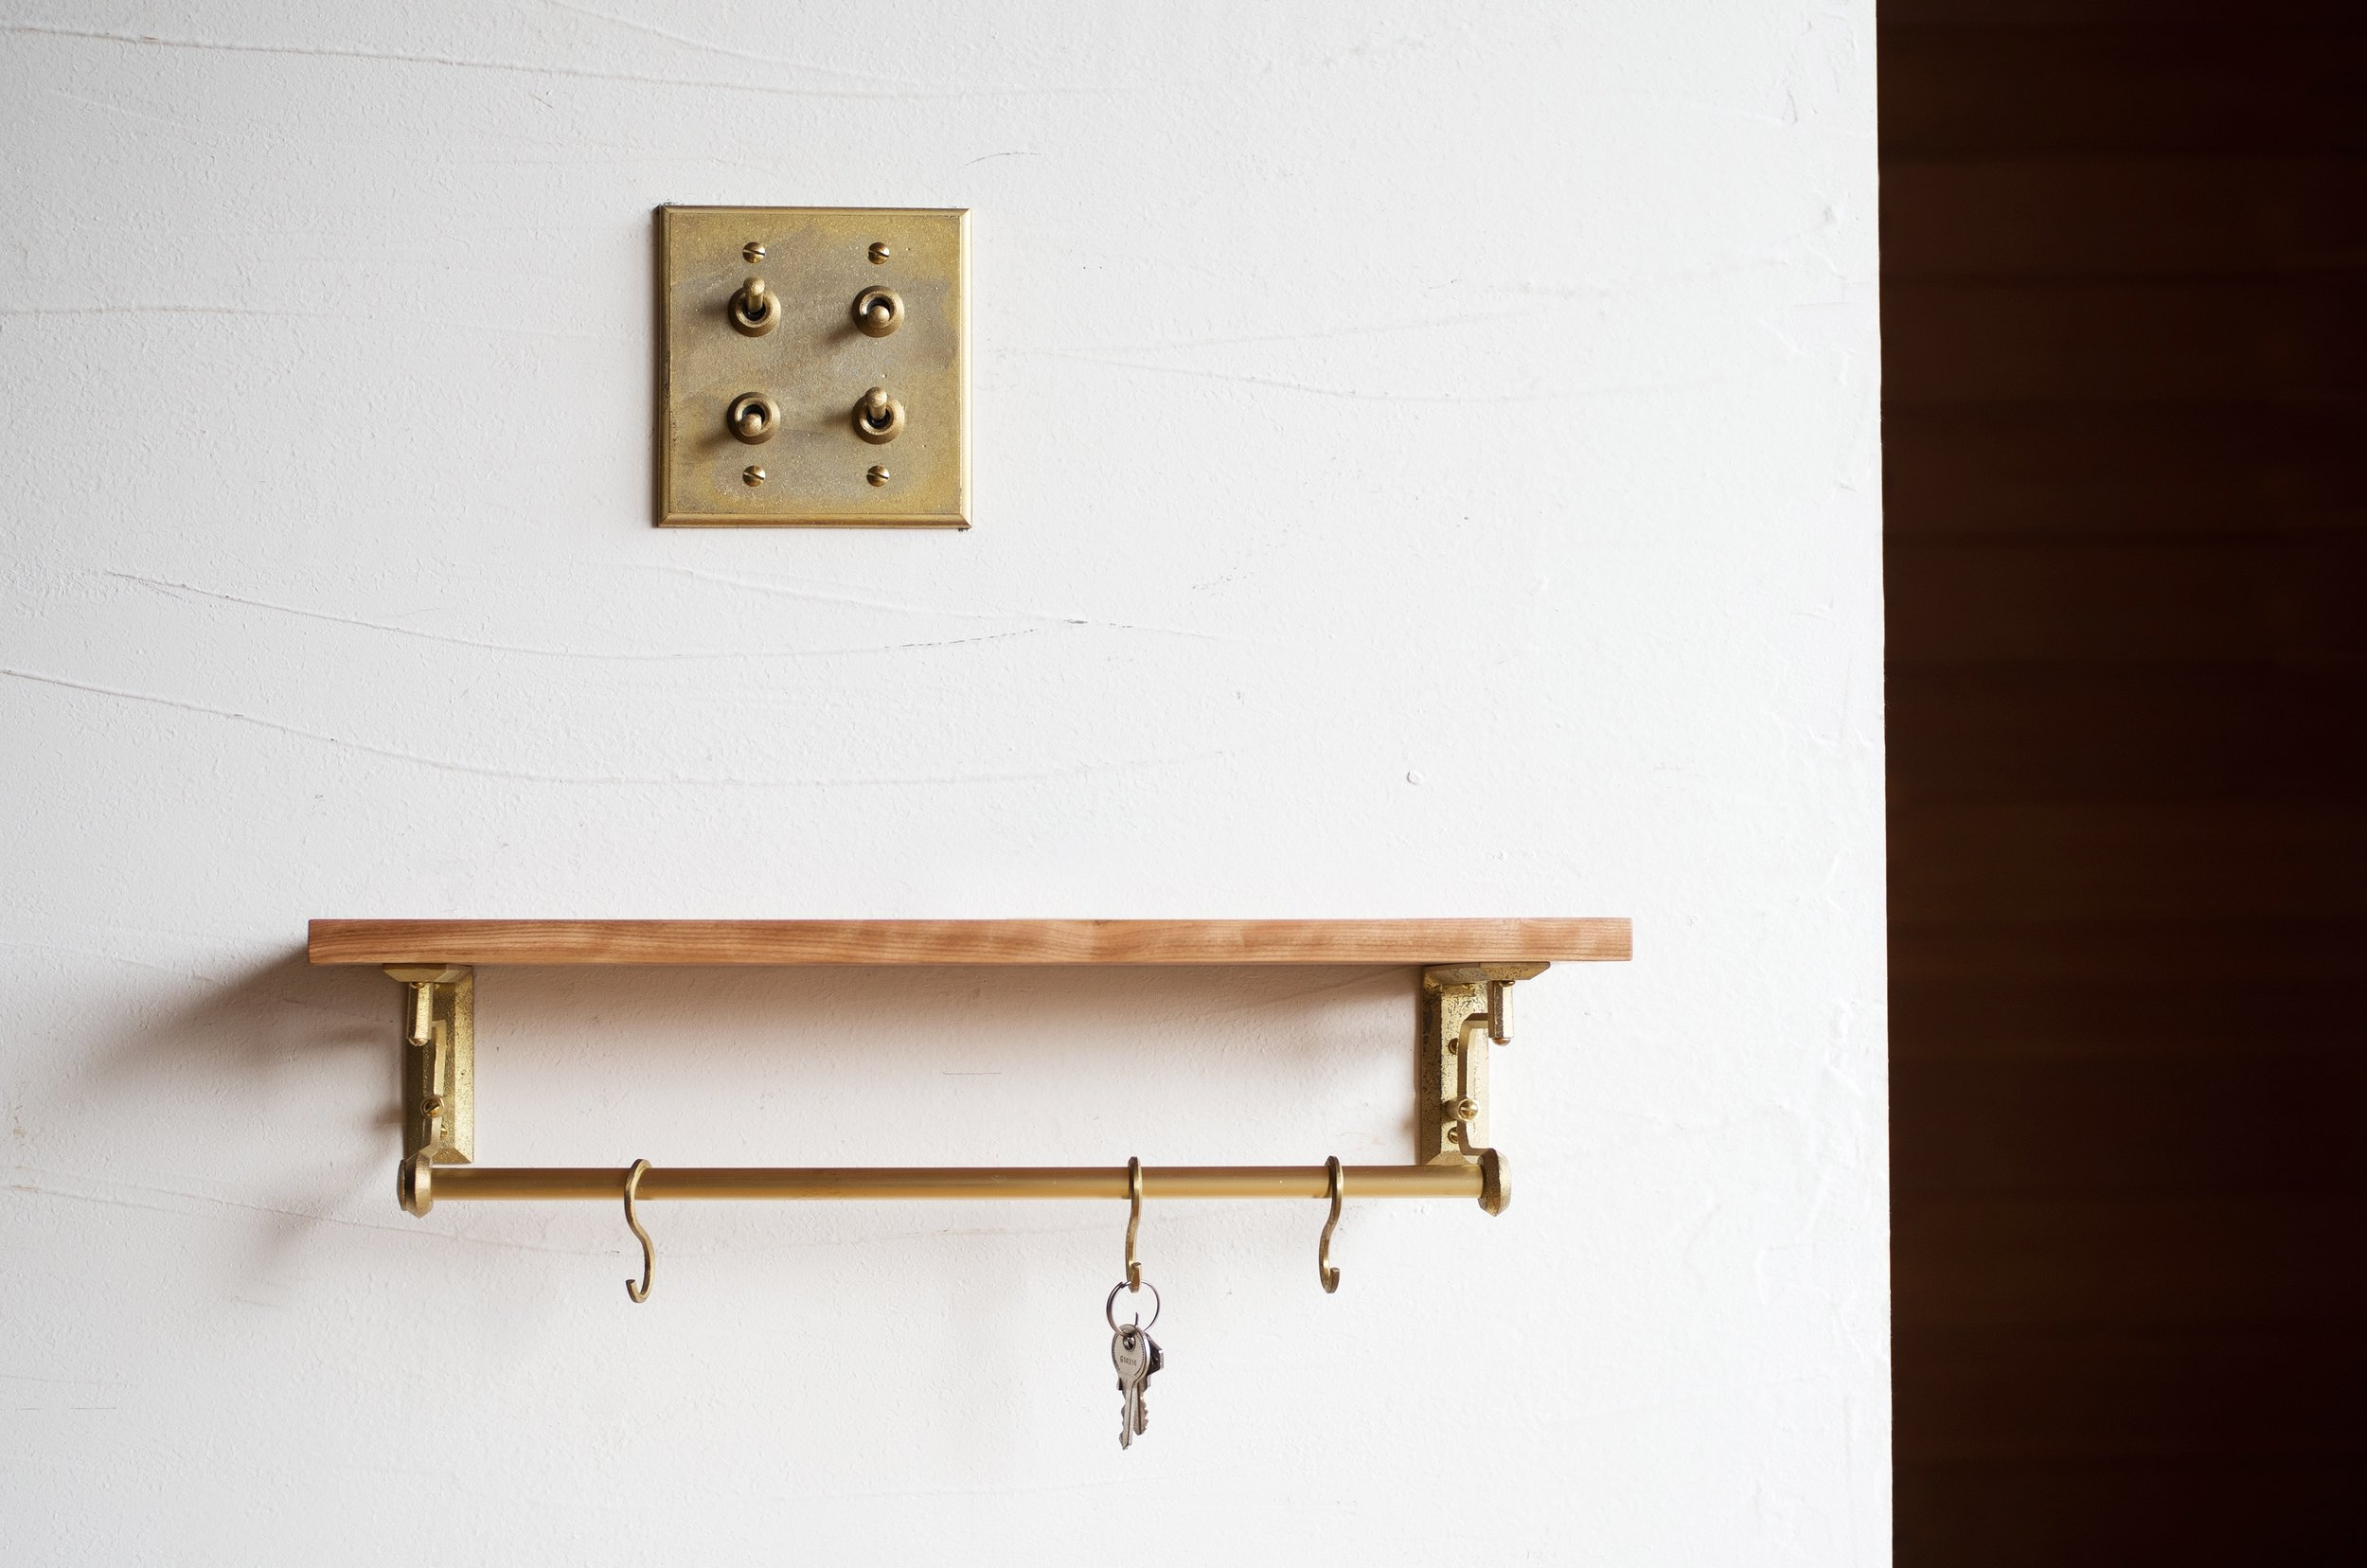 Native&Co_MATUREWARE_Shelf_Bracket_2.jpg